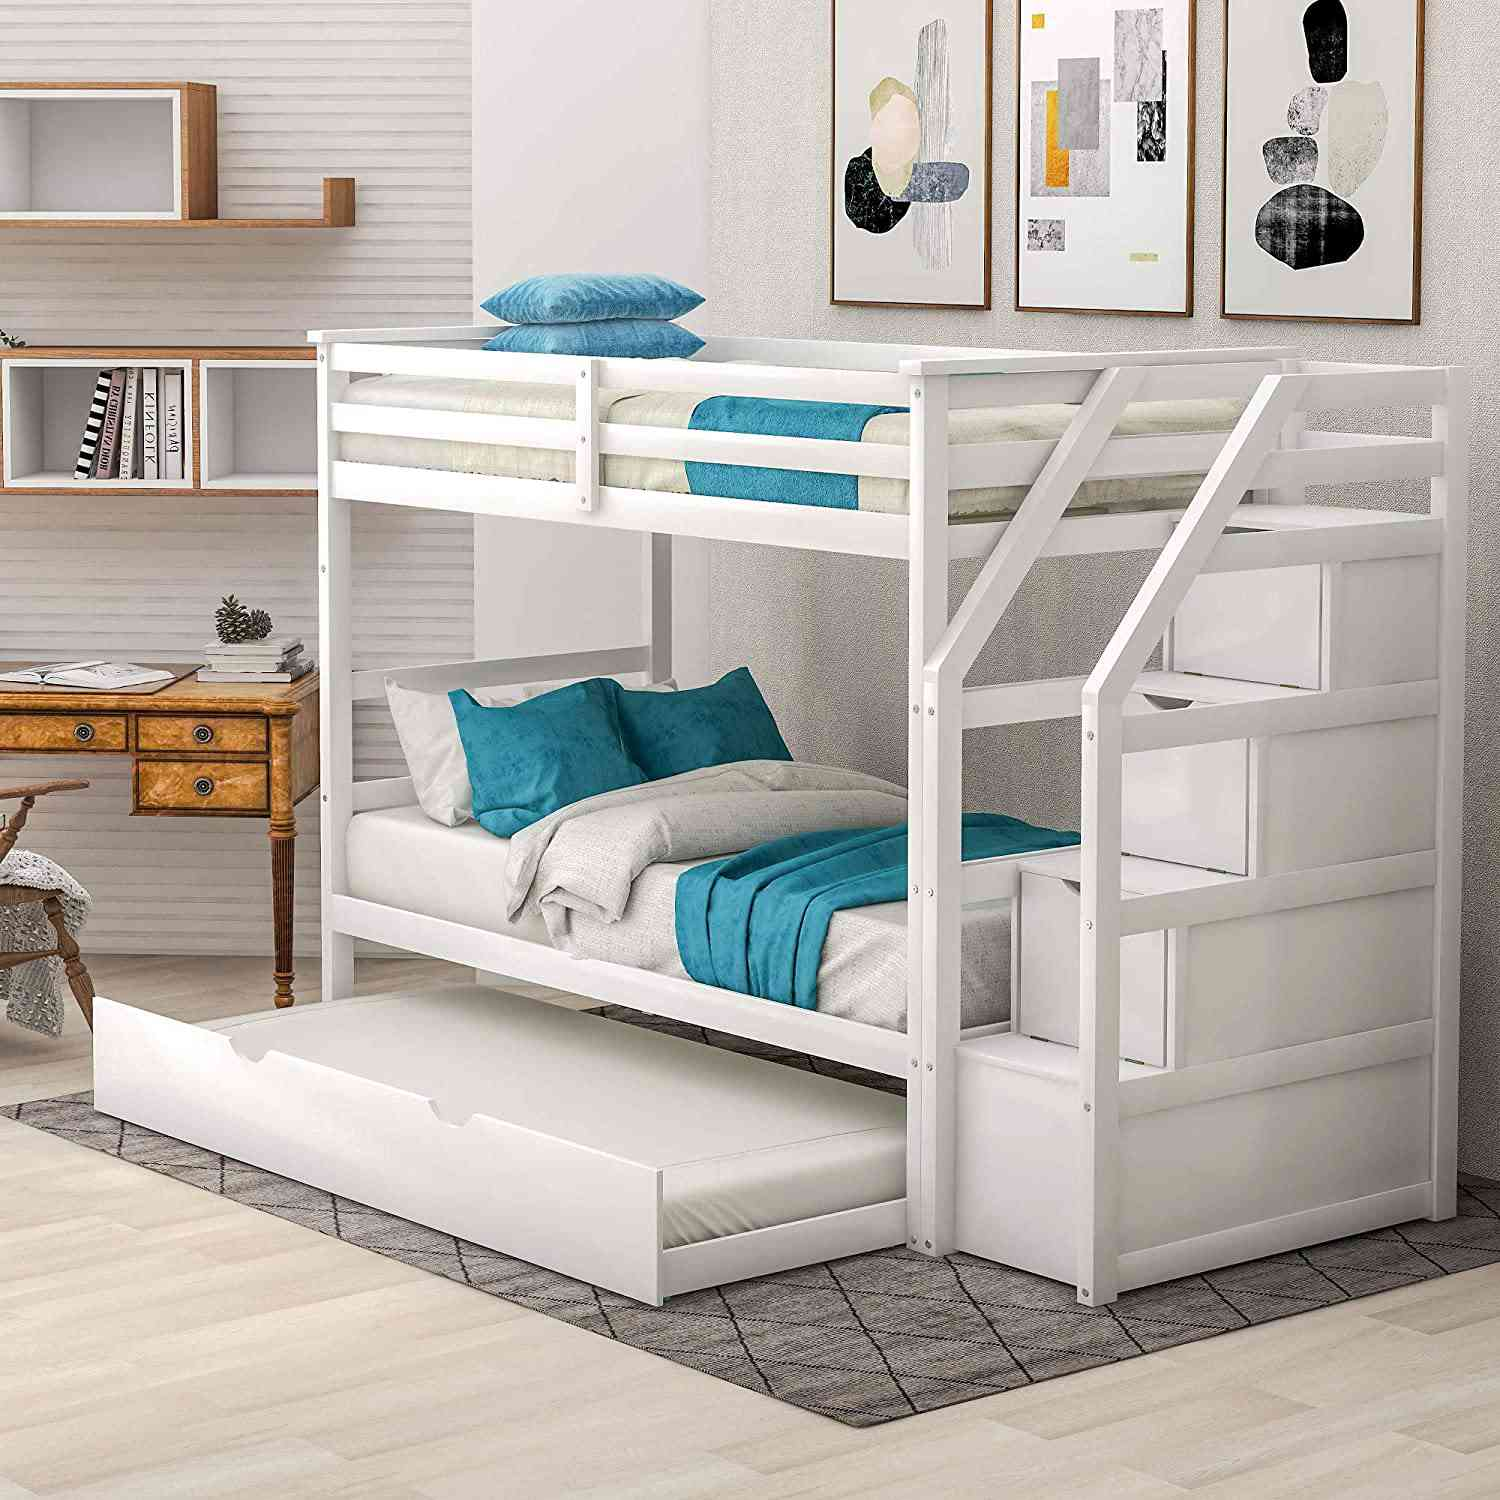 Harper and Bright Designs Twin Over Twin Bunk Bed with Stairway, Trundle, and Storage Drawers